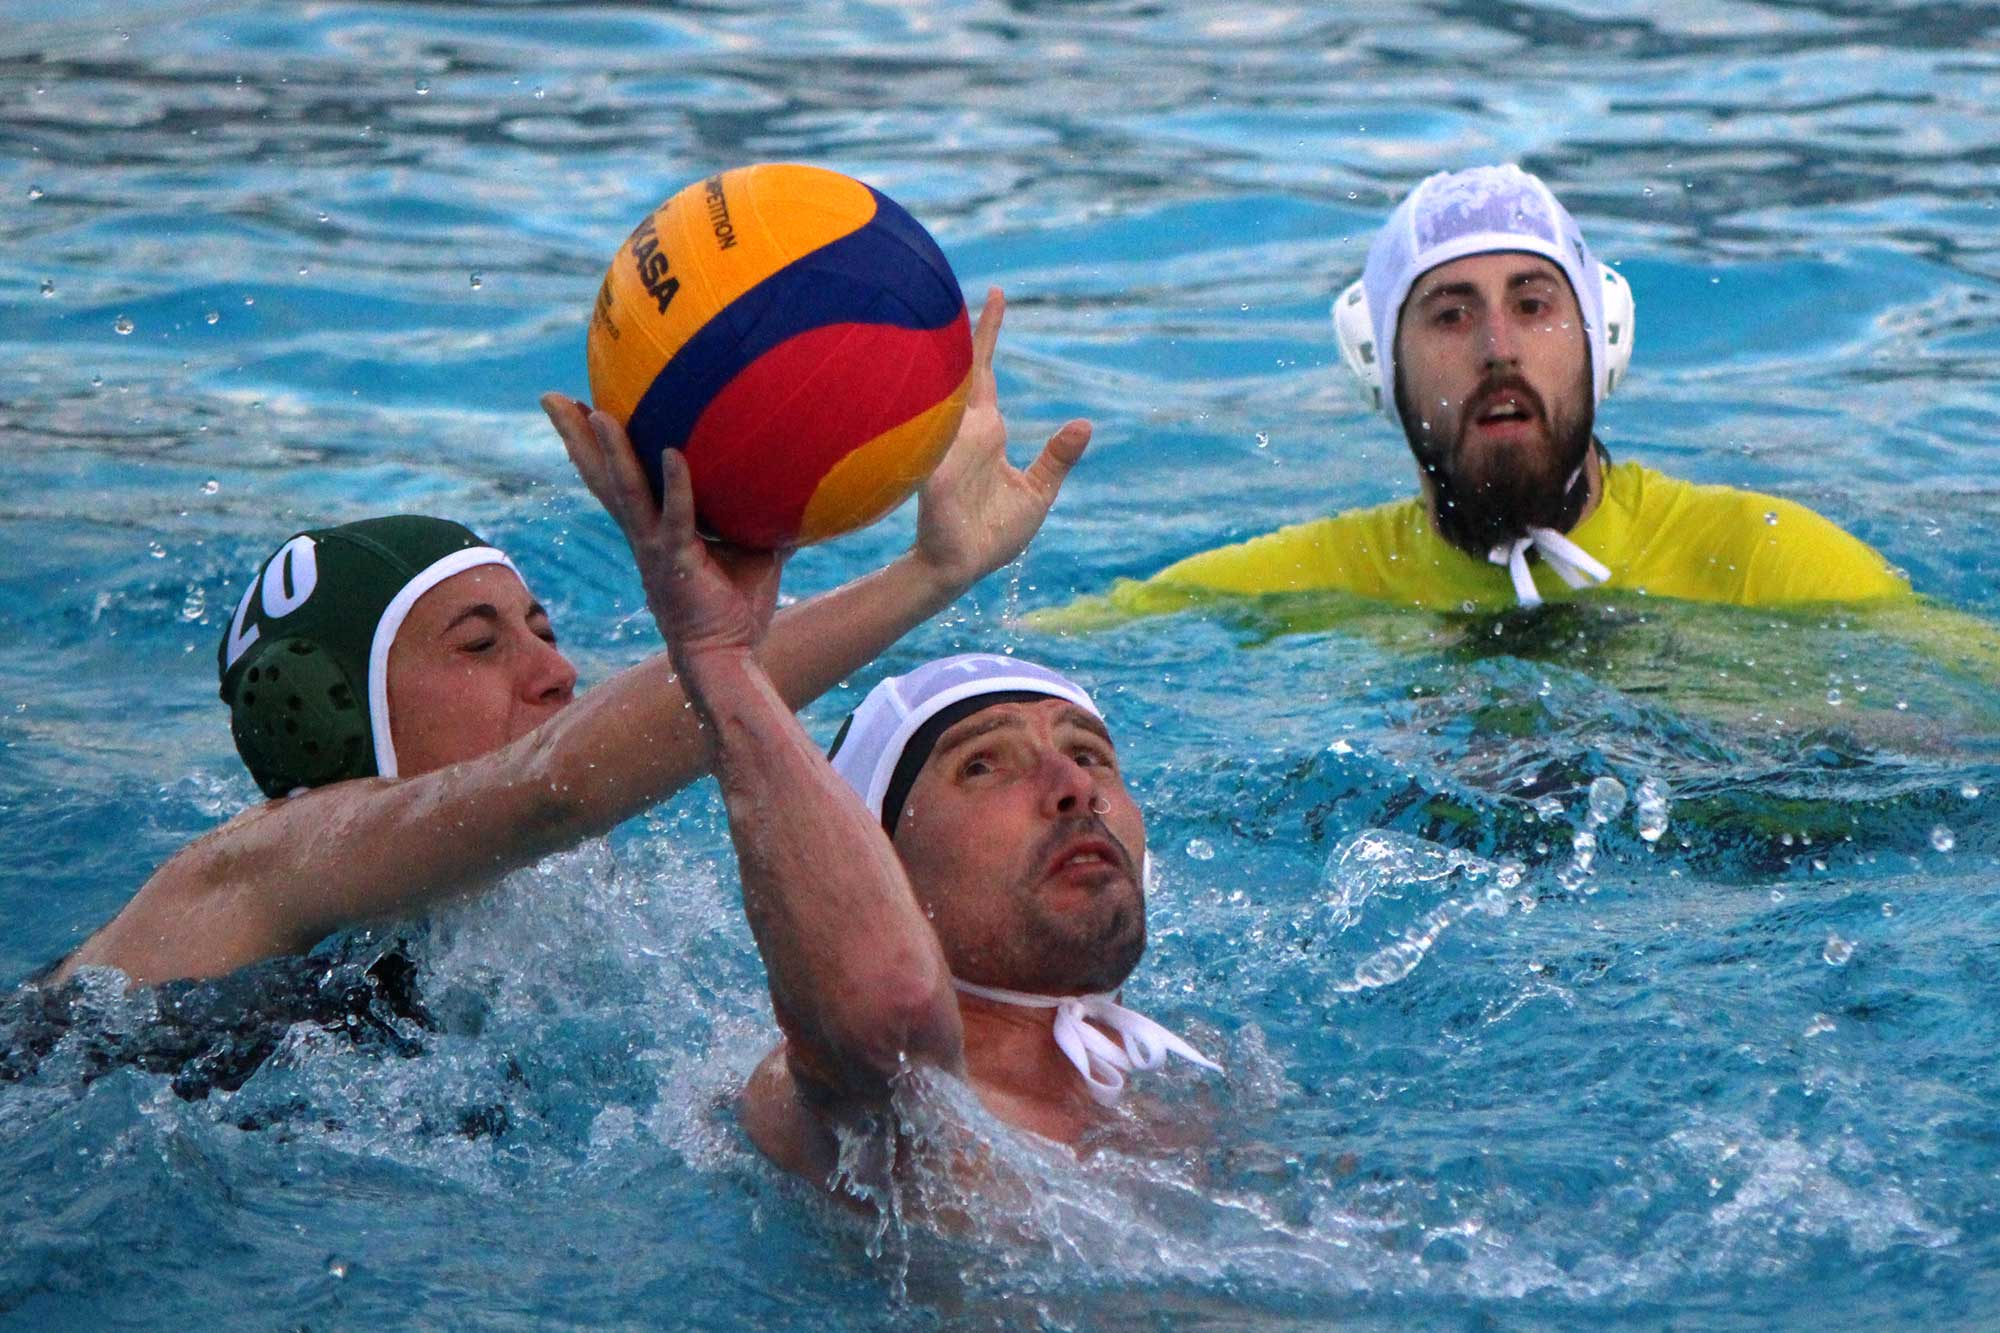 Water Polo at St Josephs, London SE19, Brockwell Lido.